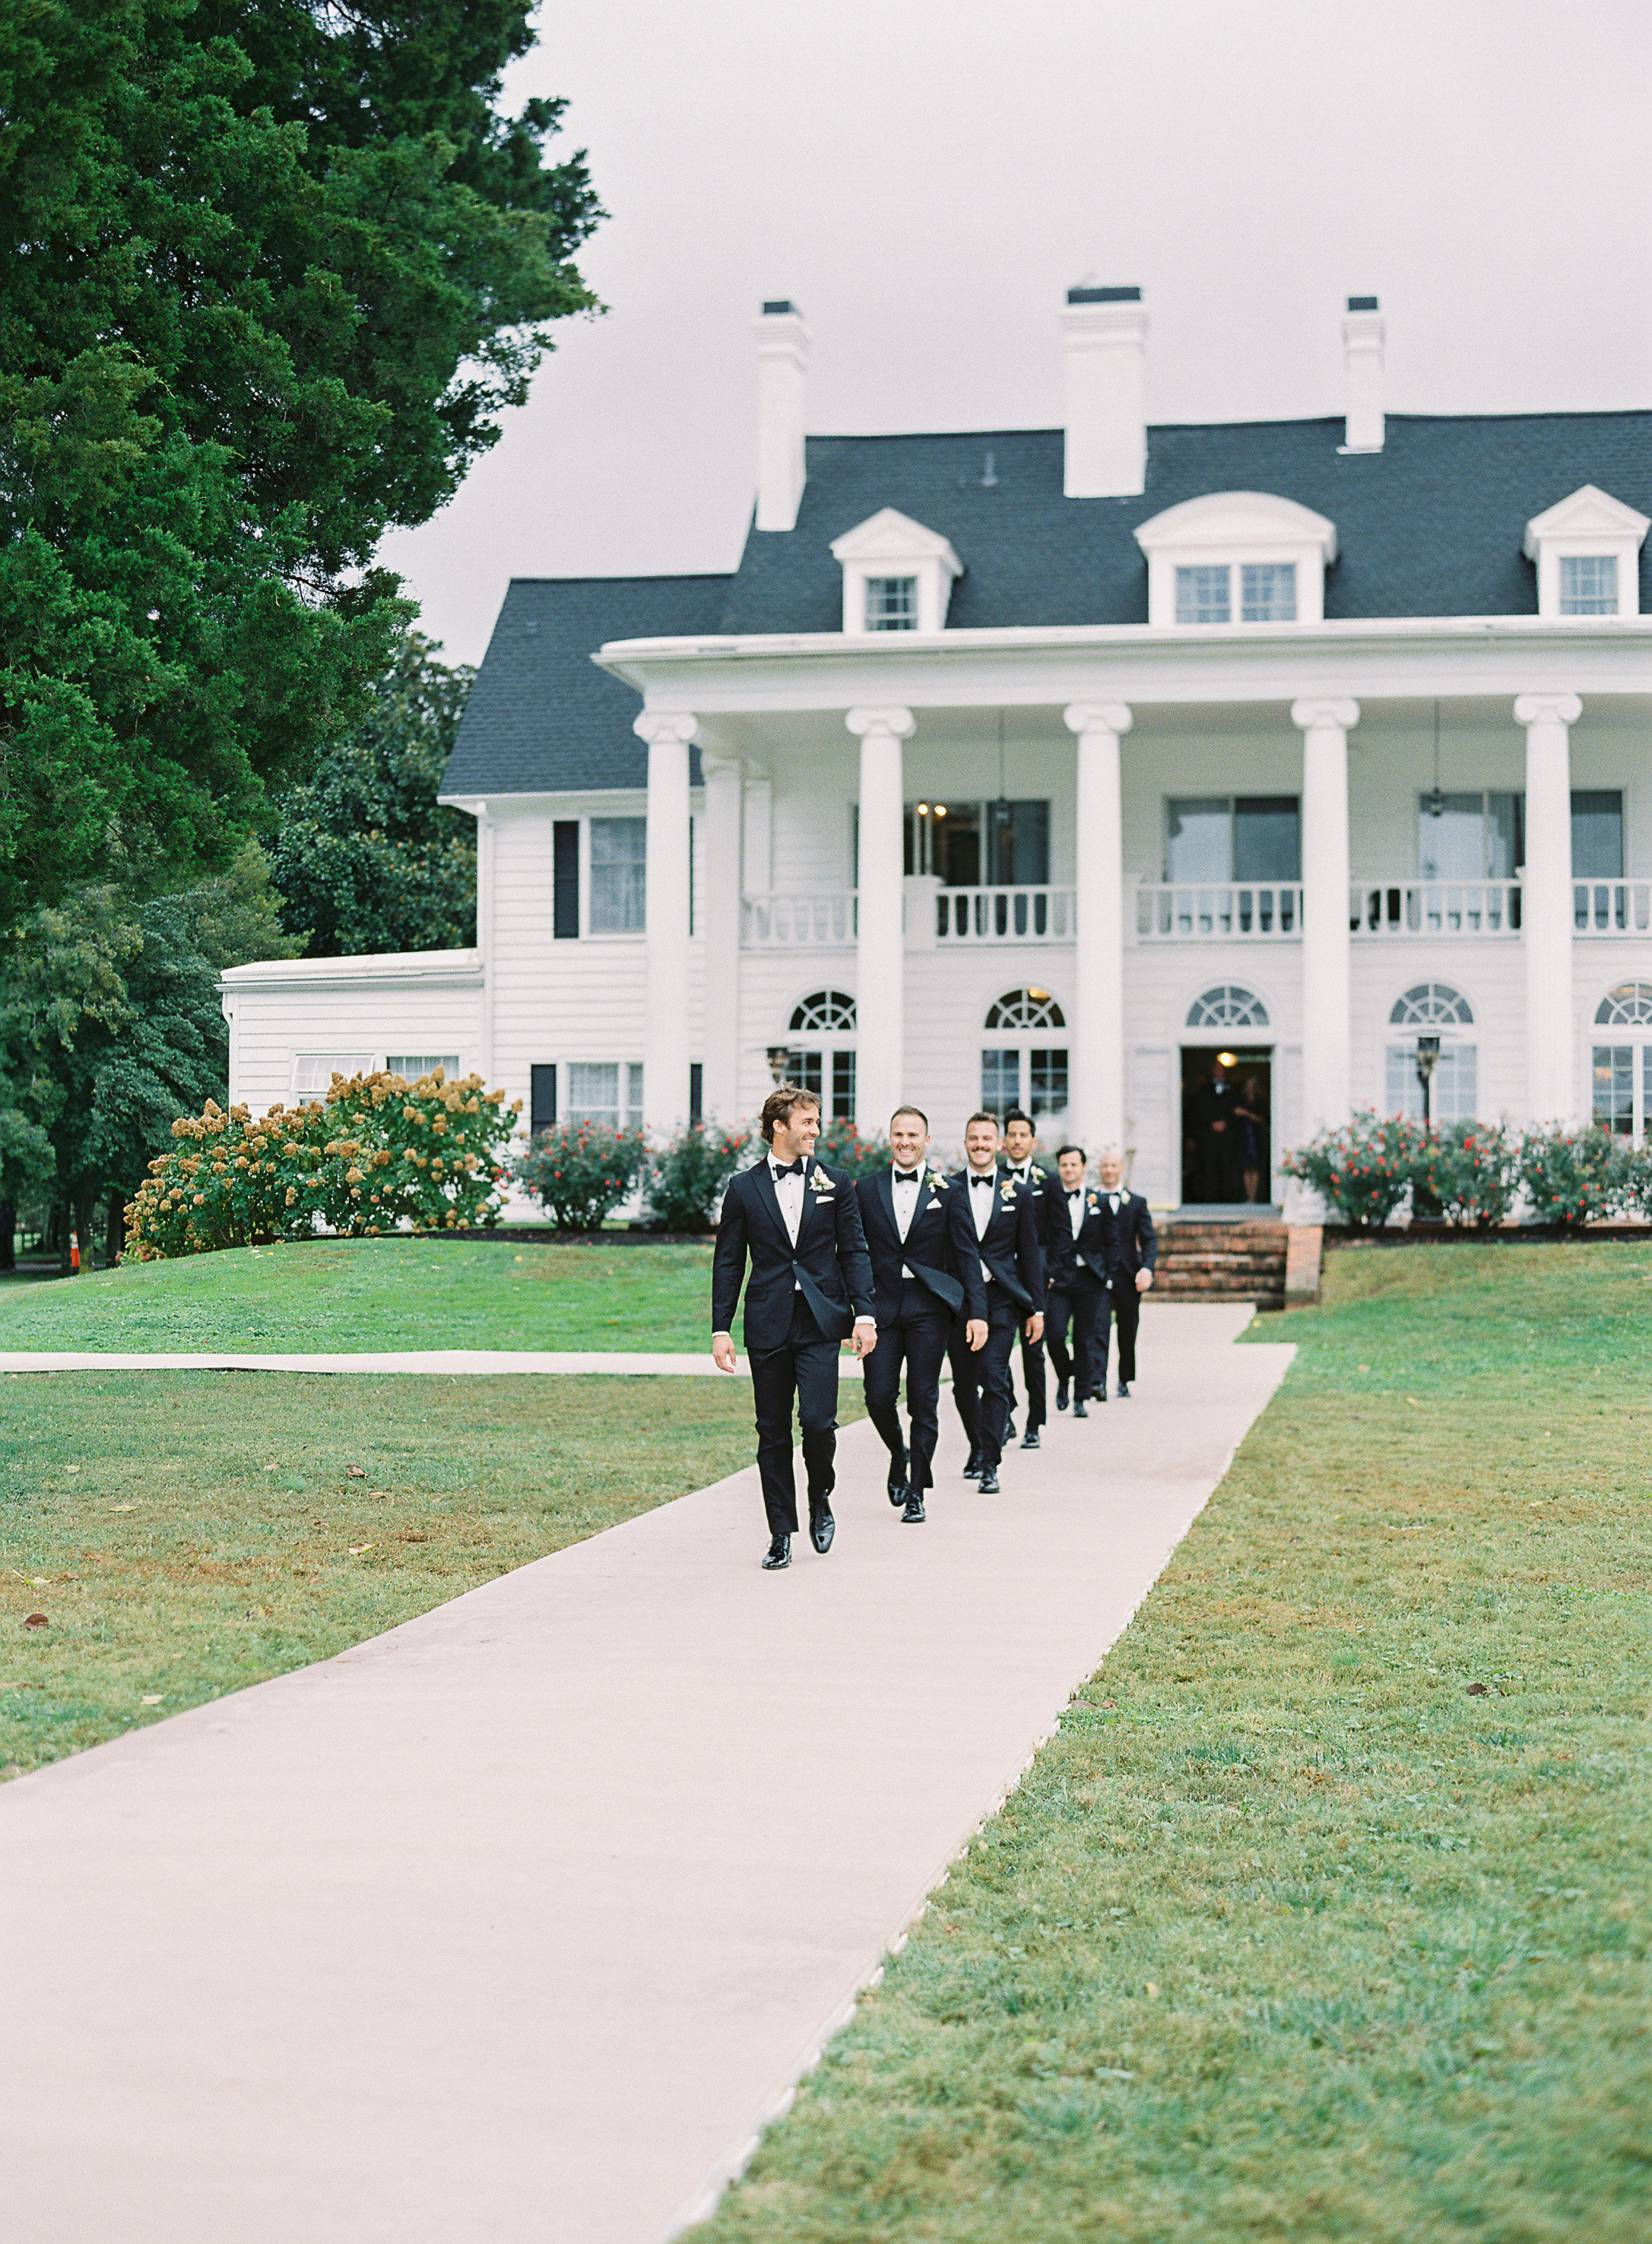 lauren alex wedding groomsmen walking in front of manor